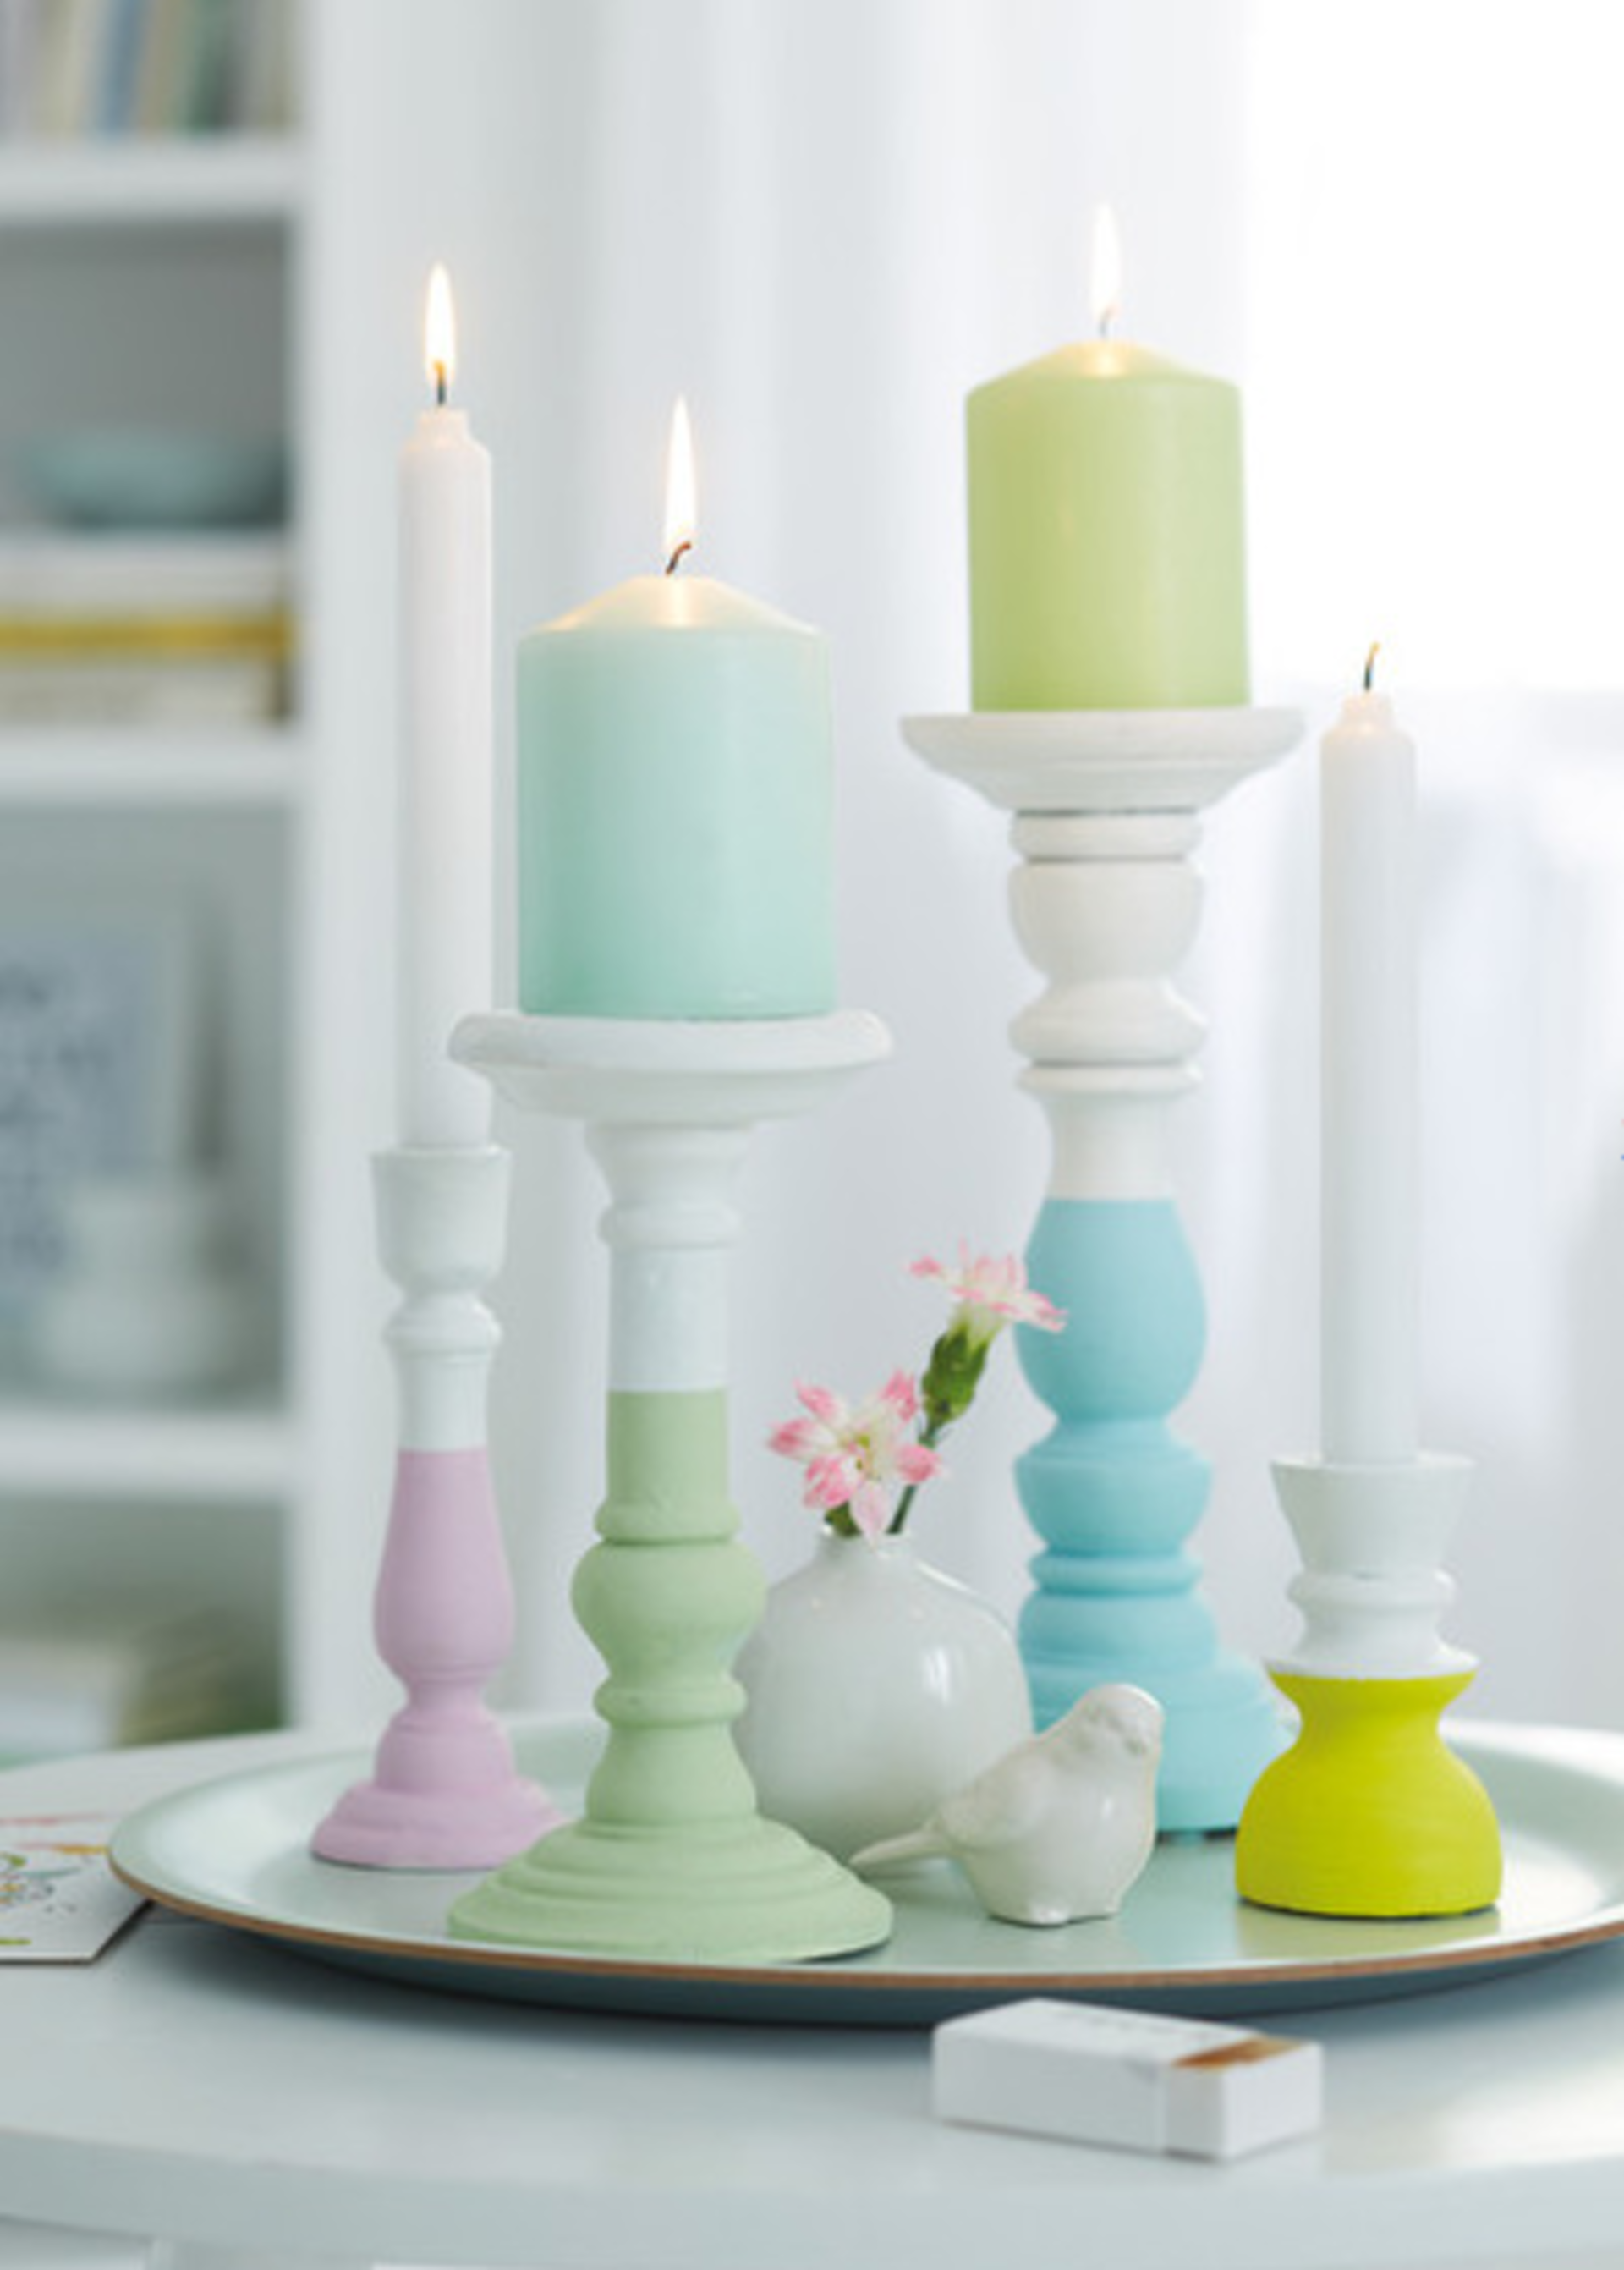 These Ideas Can Get Your Home in the Mood for Easter